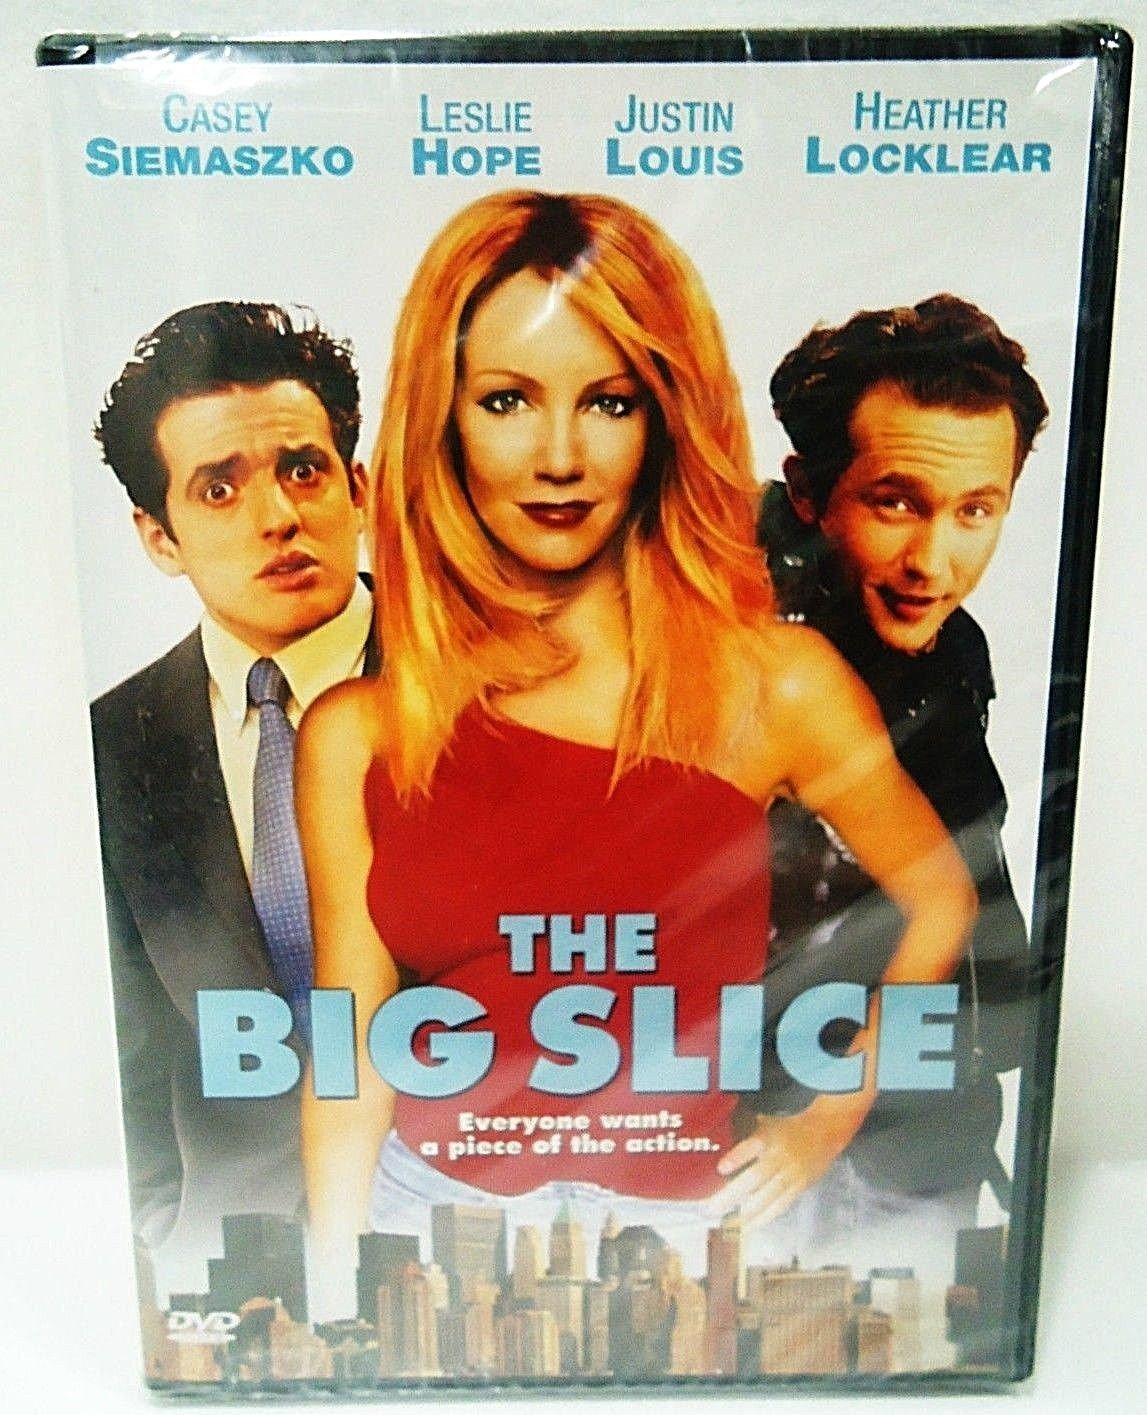 THE BIG SLICE - DVD - HEATHER LOCKLEAR - BRAND NEW - COMEDY - ACTION - MOVIE